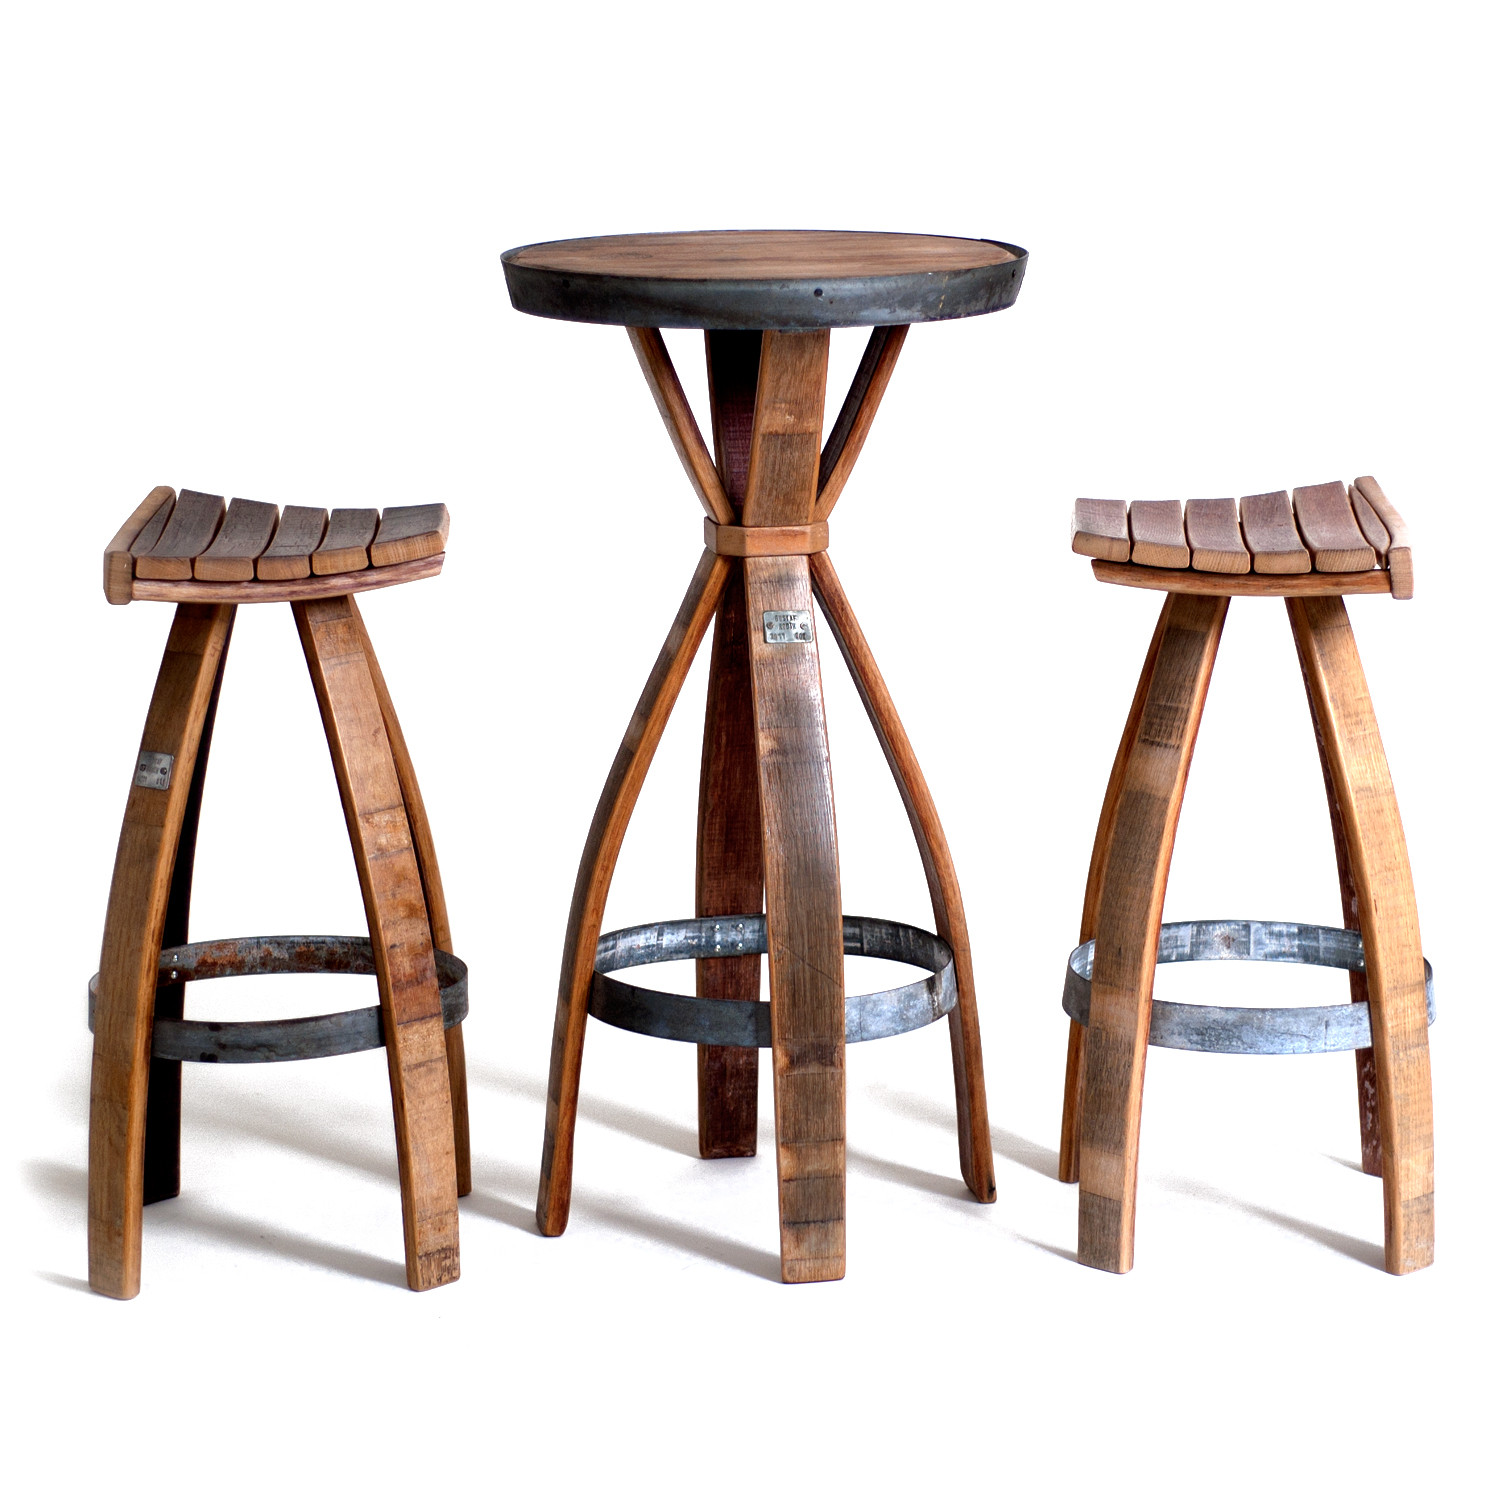 Wine Barrel Bar Set // One Table + Two Stools (Wine Barrels)  sc 1 st  Touch of Modern & Wine Barrel Bar Set // One Table + Two Stools (Wine Barrels ... islam-shia.org